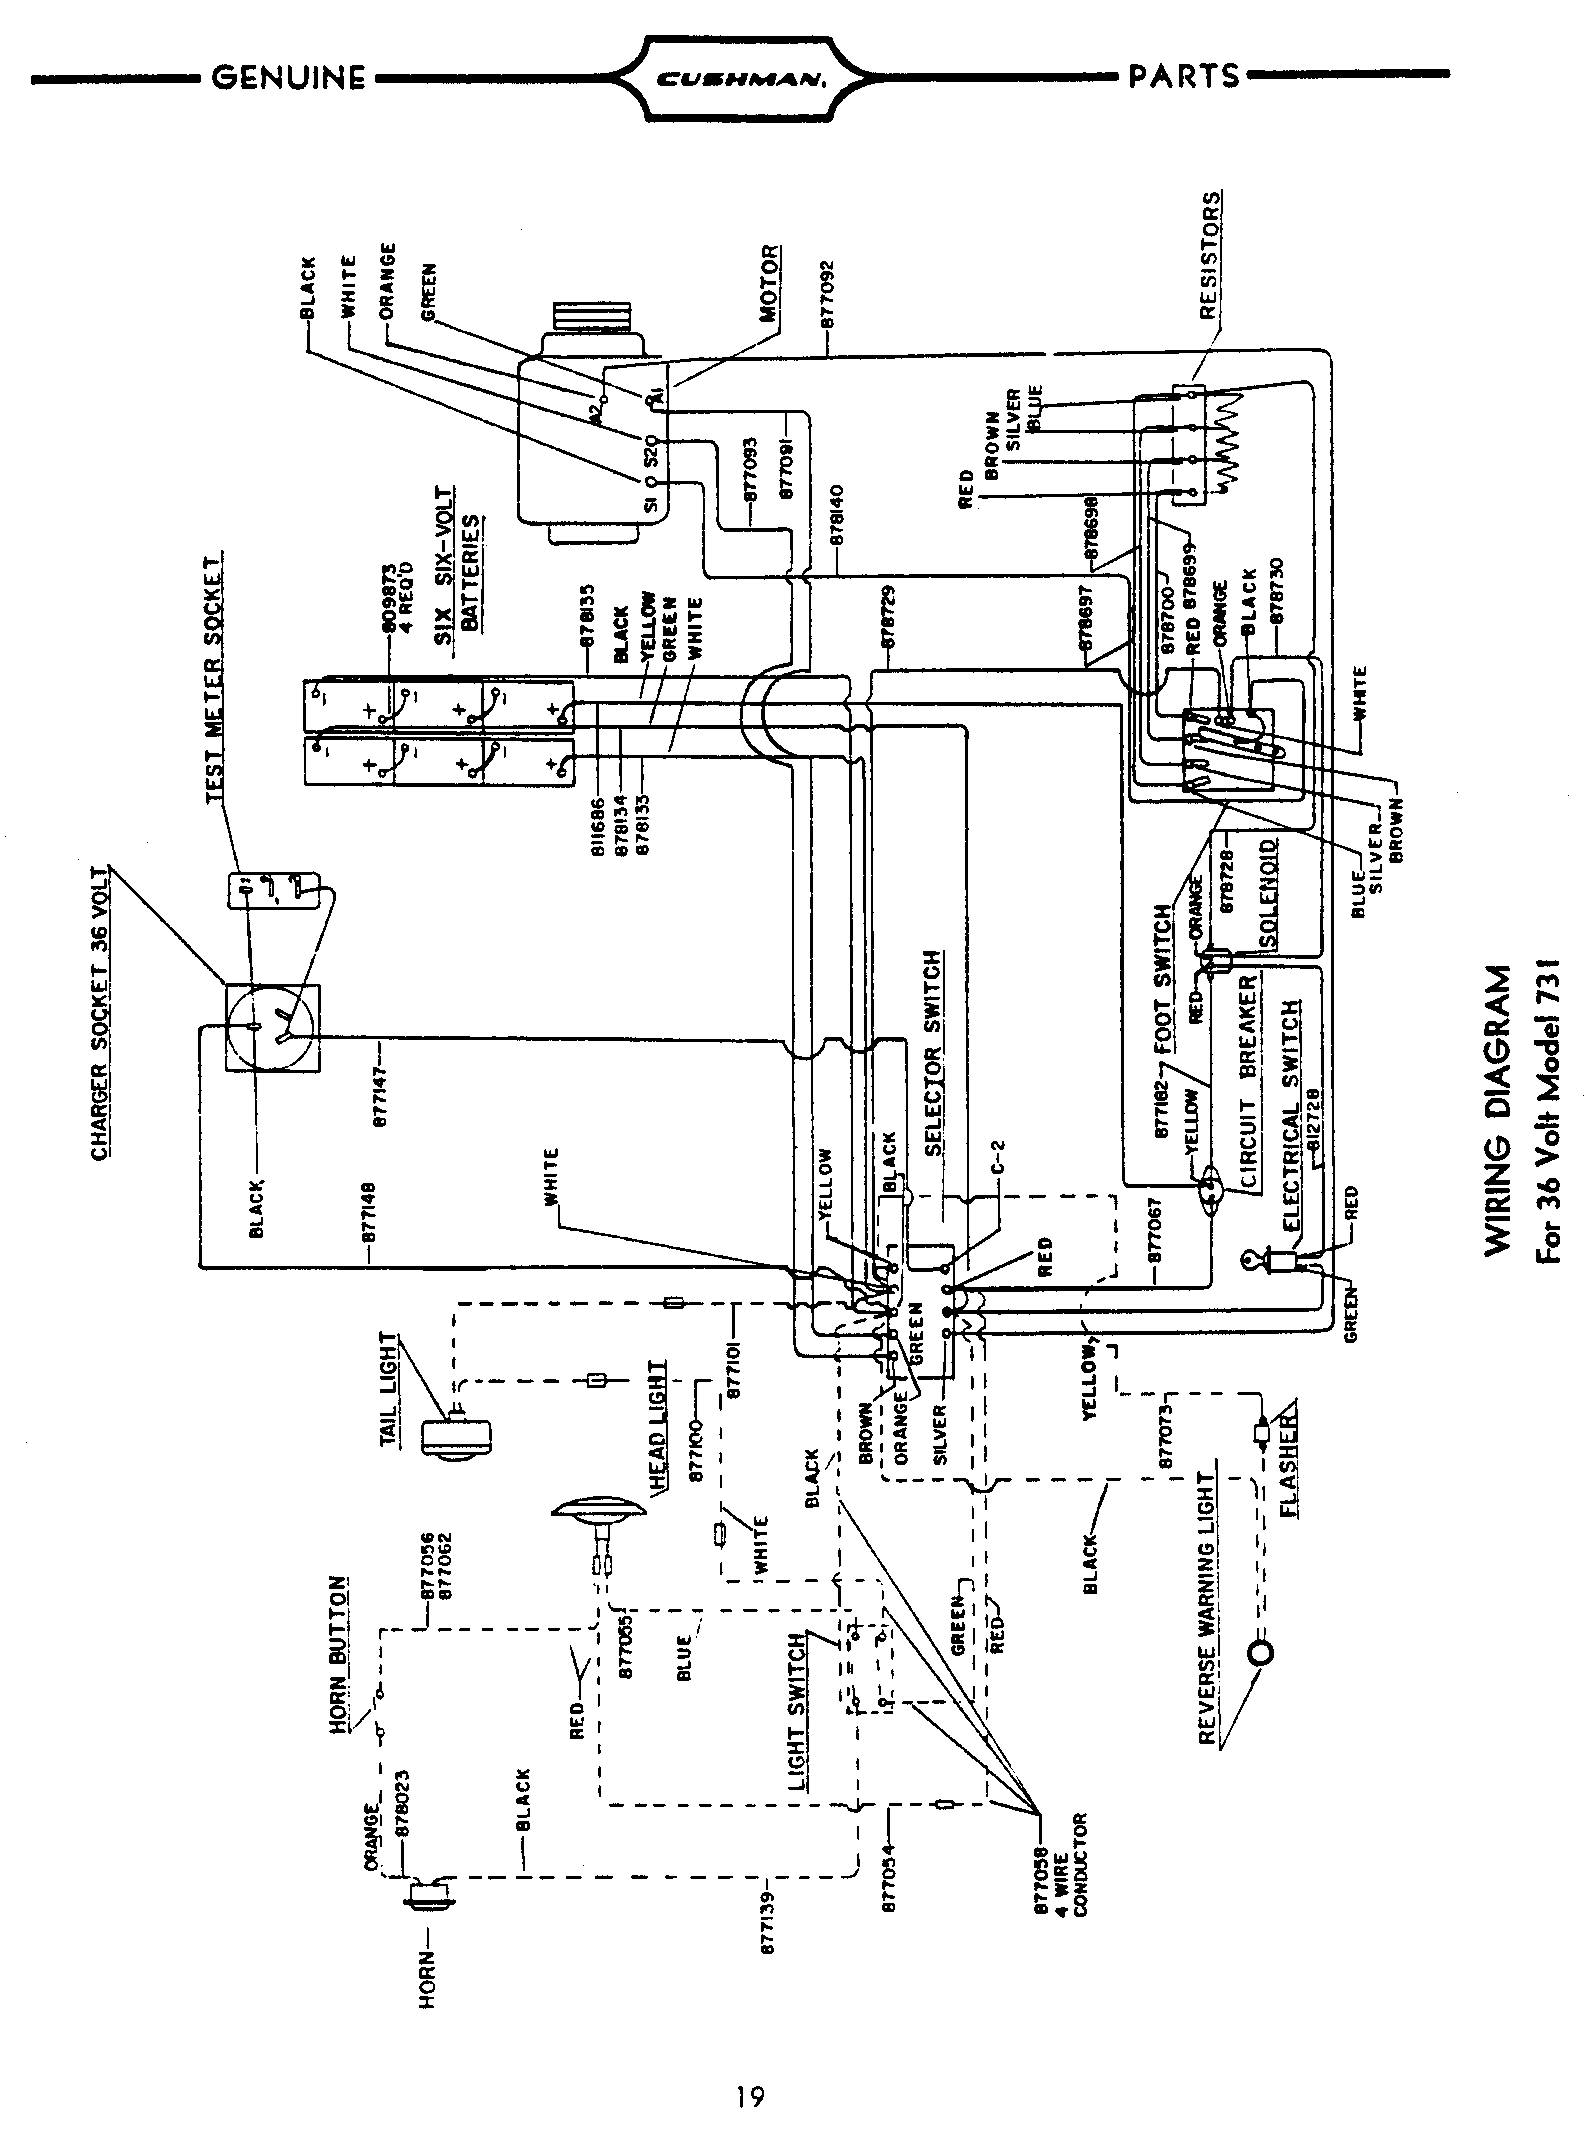 36 volt golf cart wiring diagram, pargo